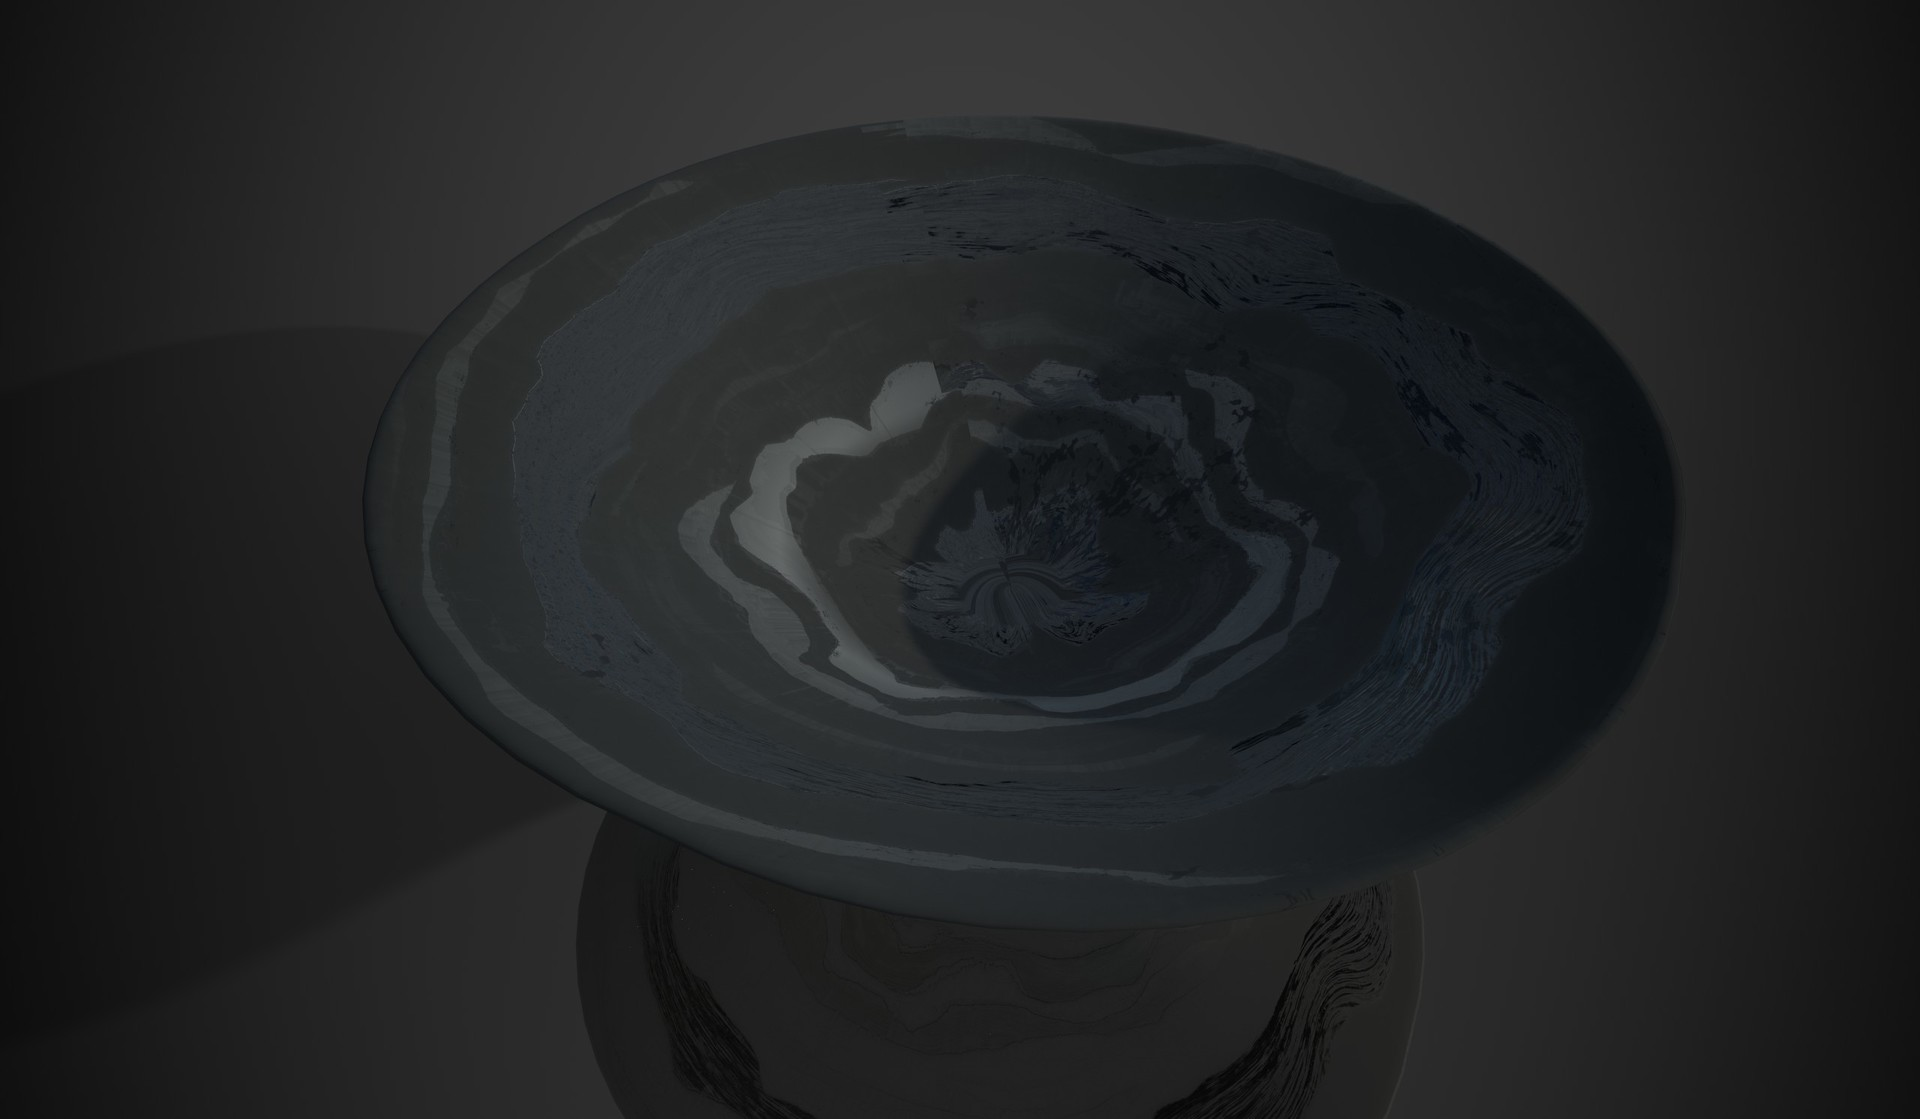 Early render with flawed uv.